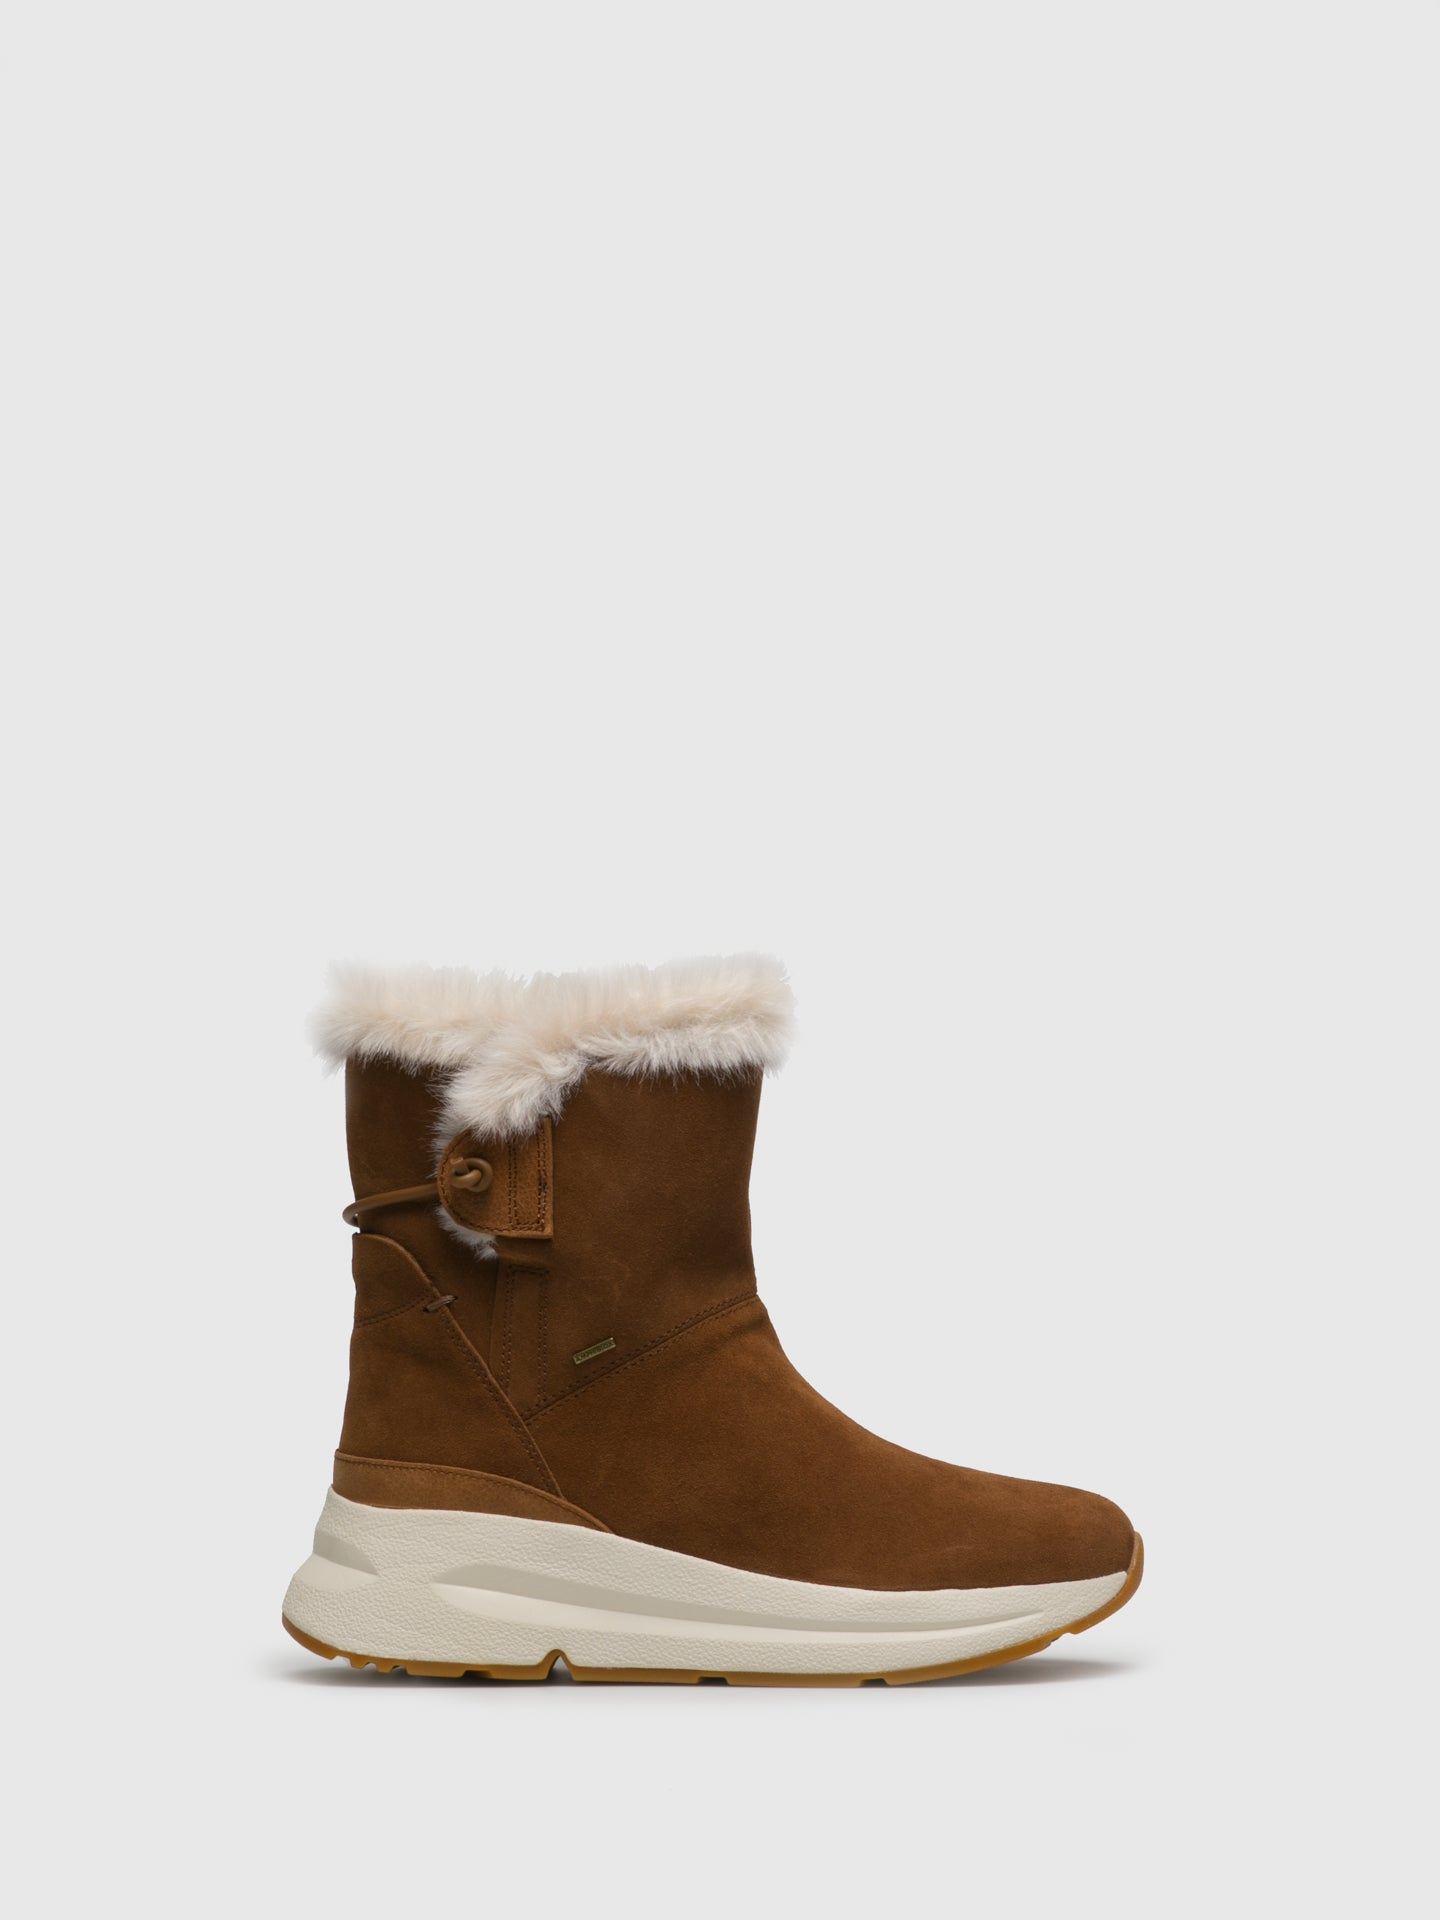 Geox Brown Fluff Boots